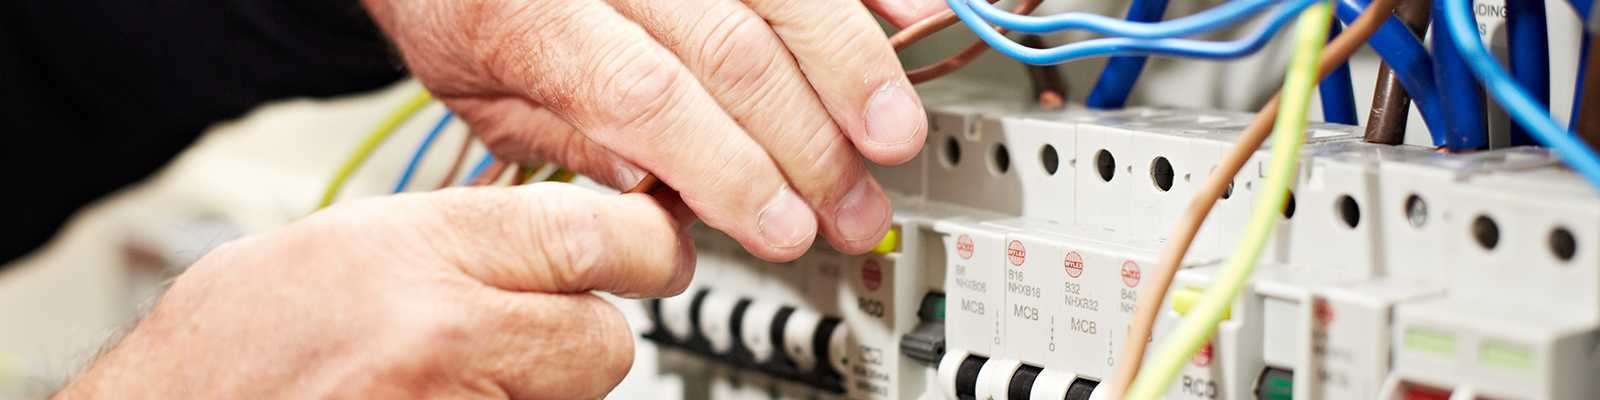 NVQ Level 3 Electrical Qualification